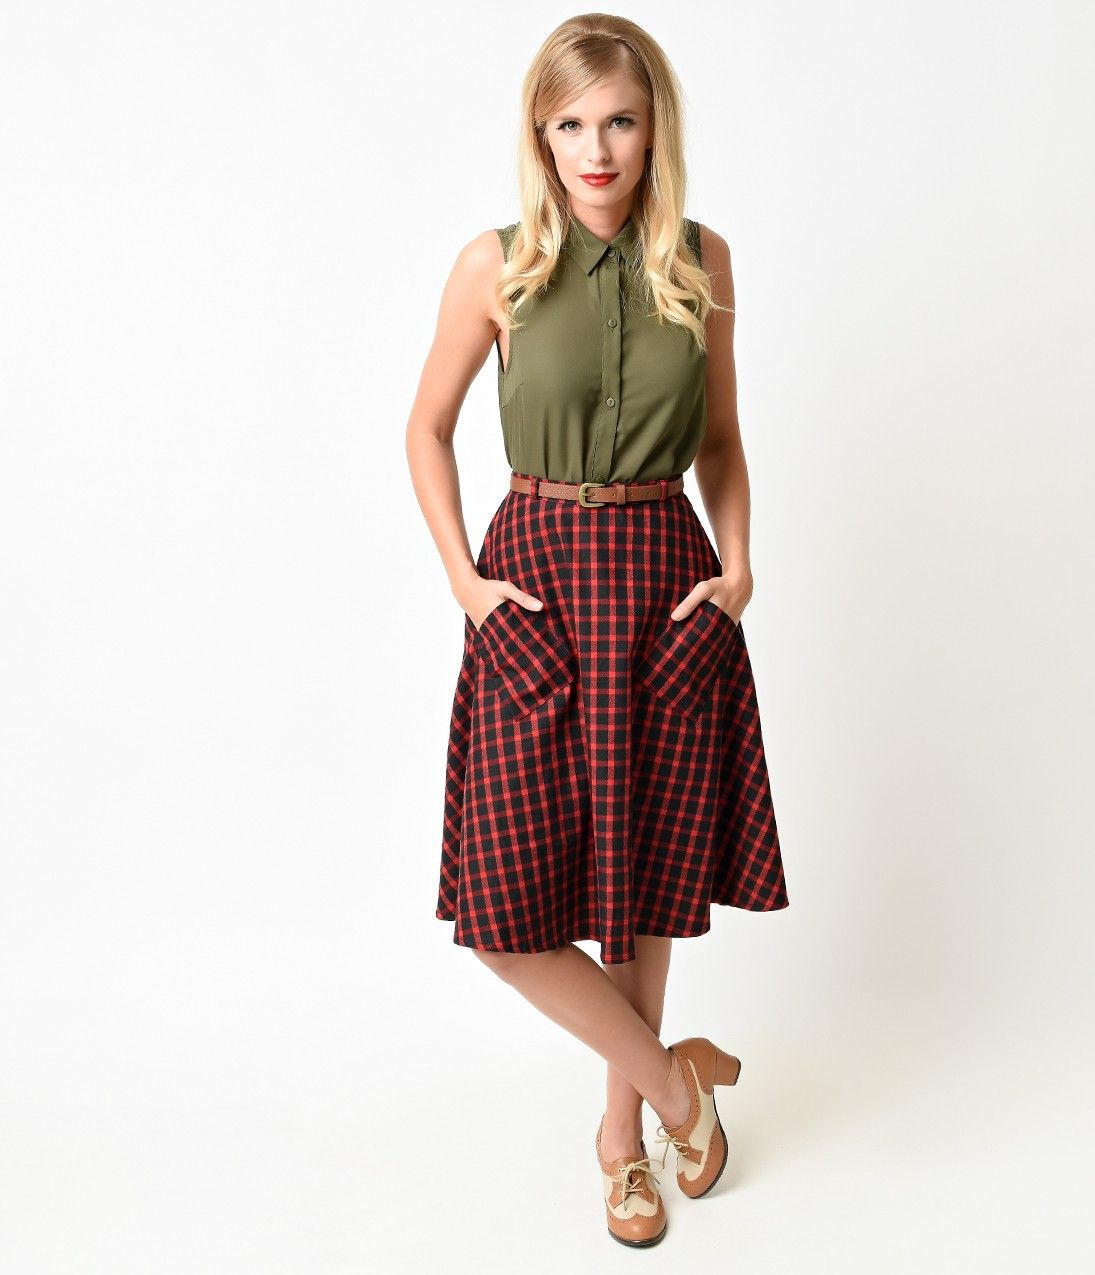 New Vintage Skirts Swing Skirt Full Circle Classic Poodle Or Slim Pencil Plus Size And Too